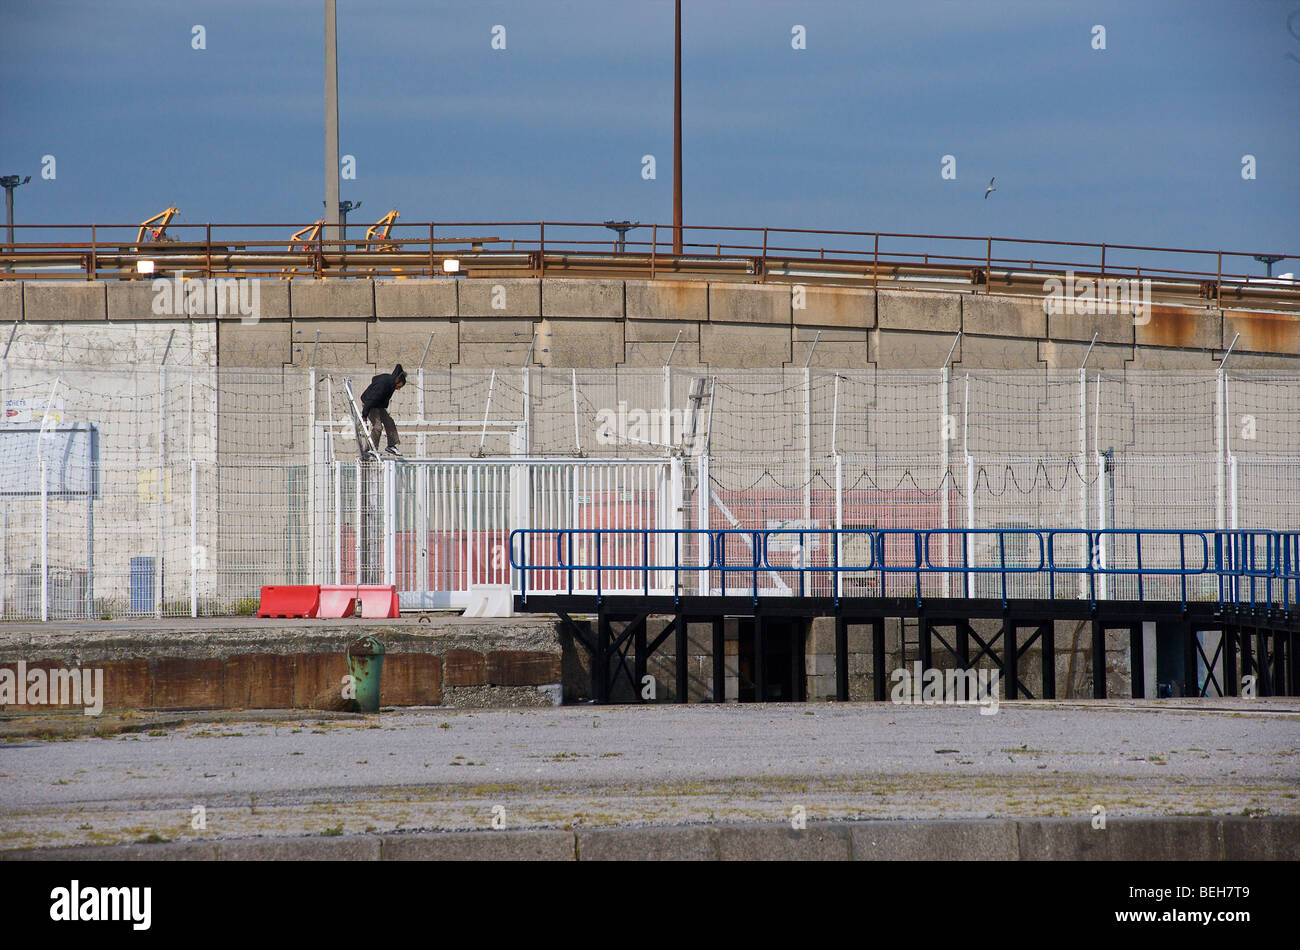 Calais, a refugee hoping to reach the UK by climbing onto a ship - Stock Image